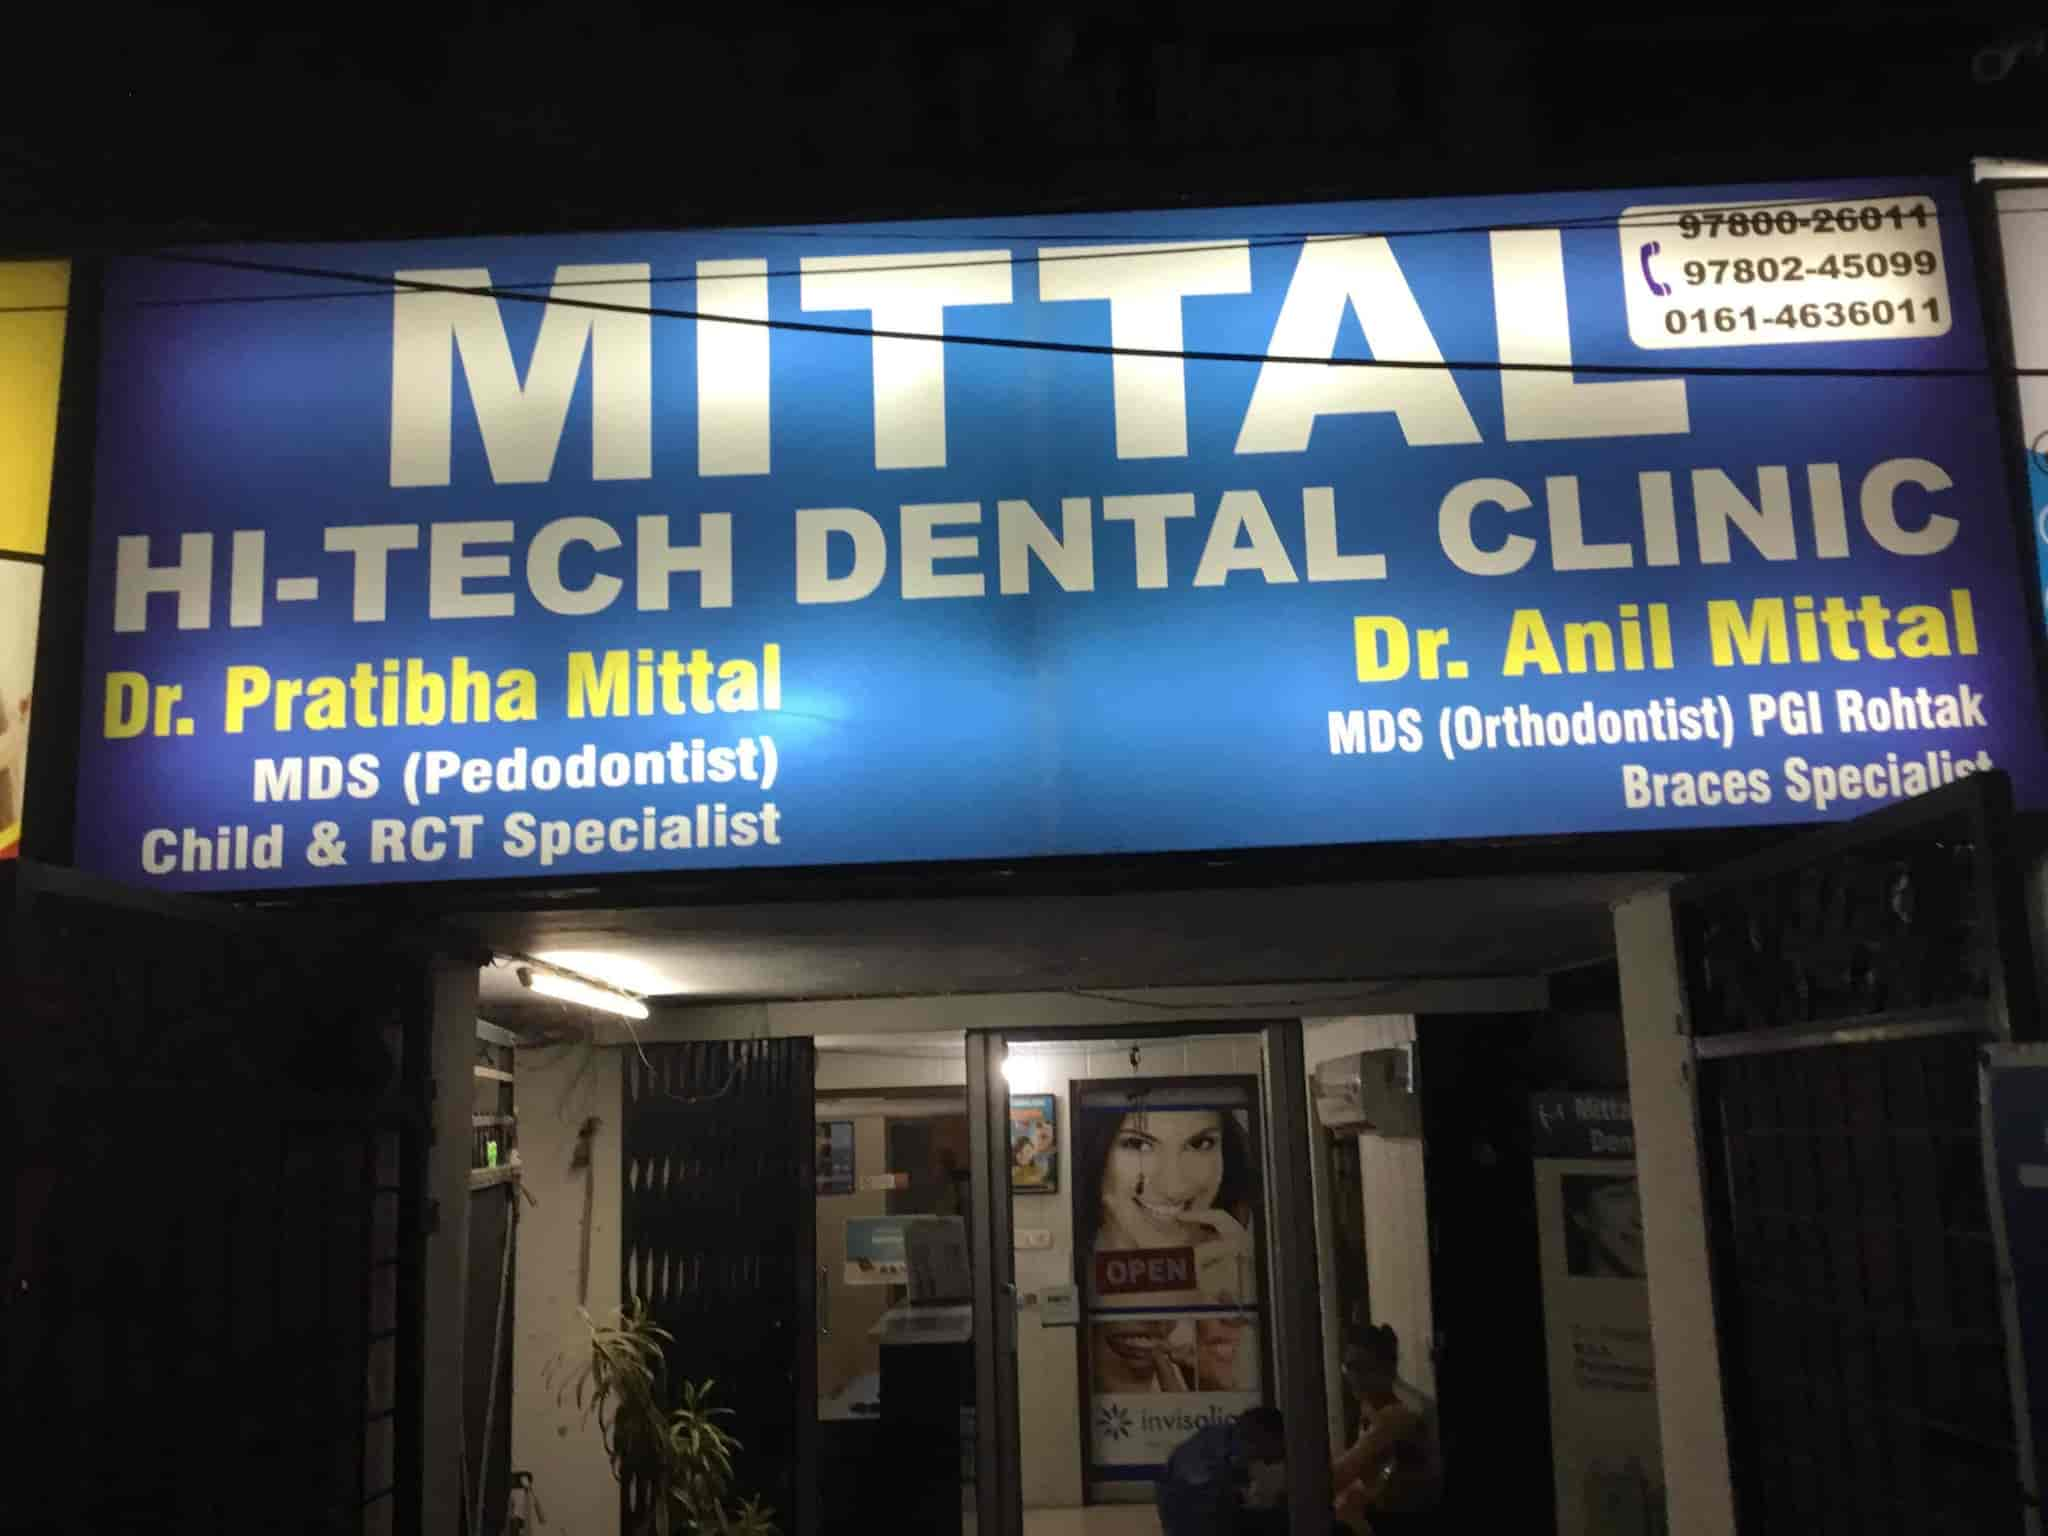 techdental